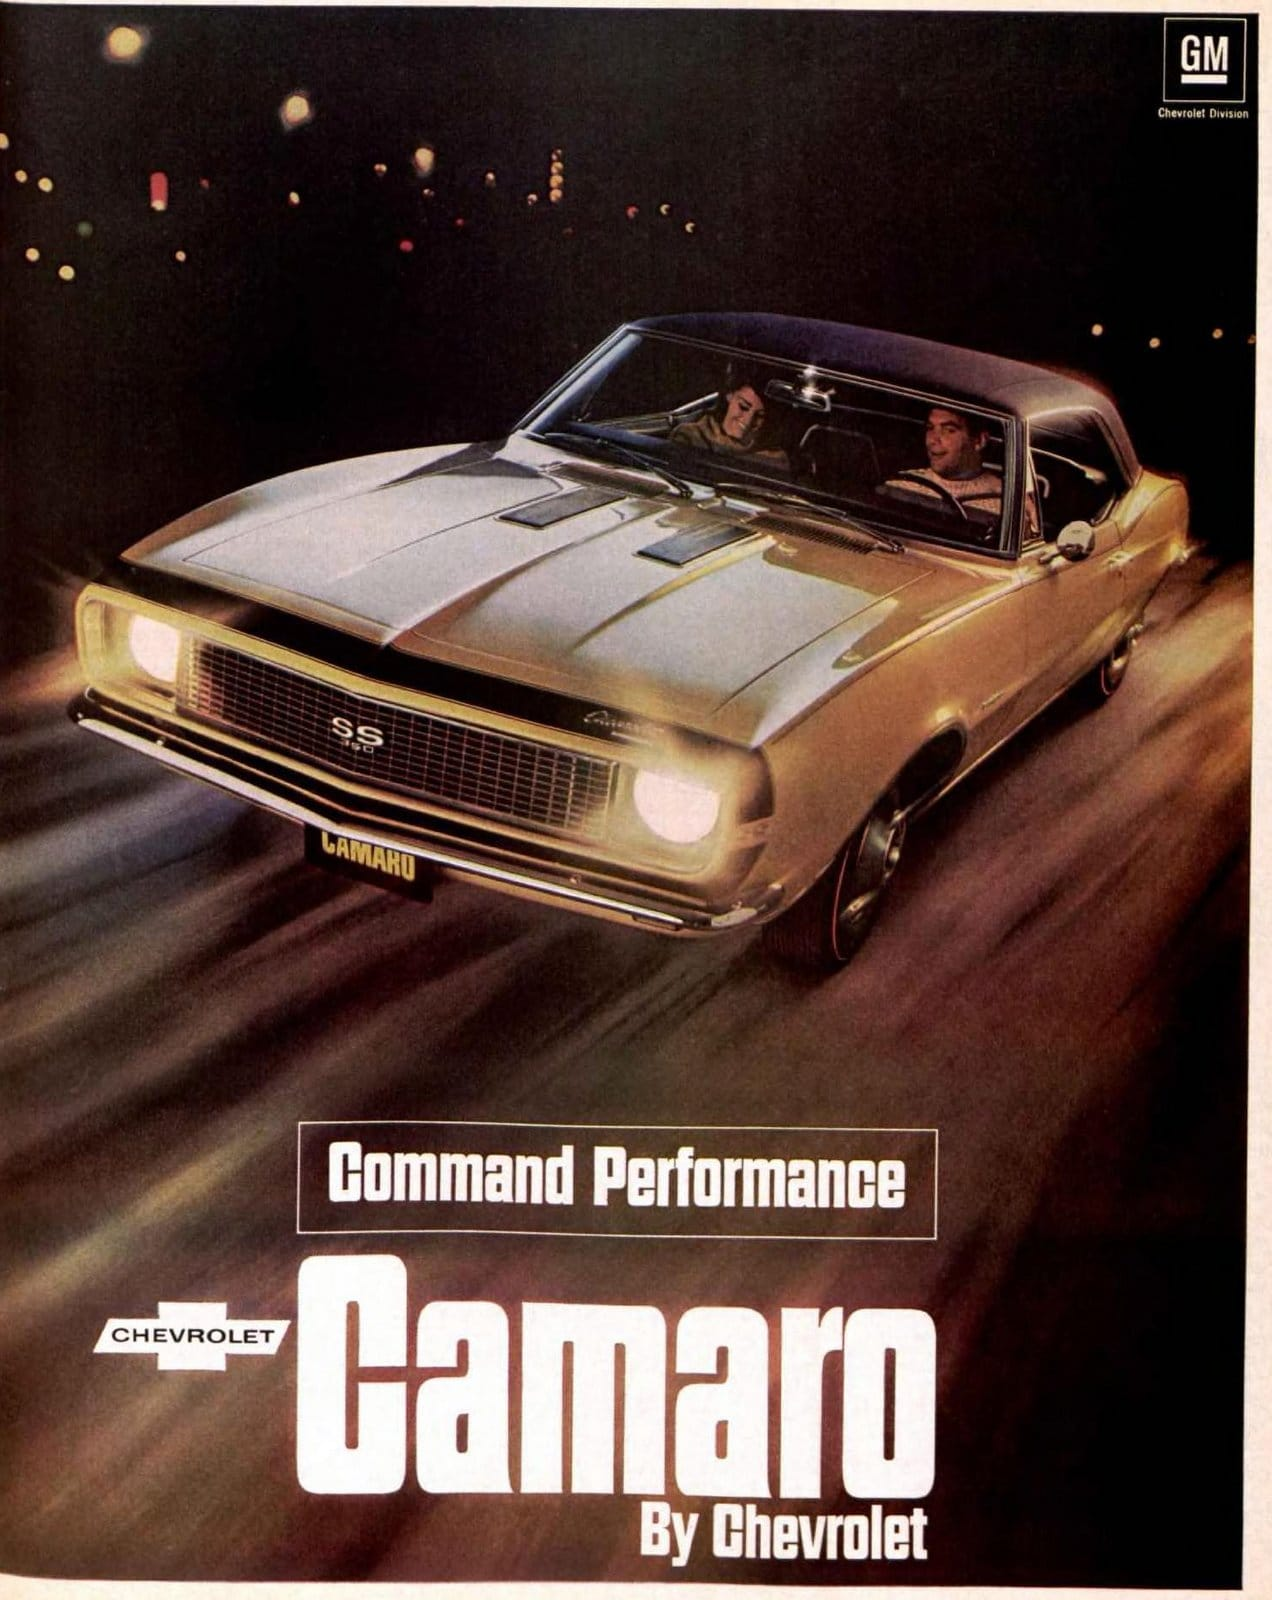 Command Performance Camaro by Chevrolet - 1967 (October 1966)